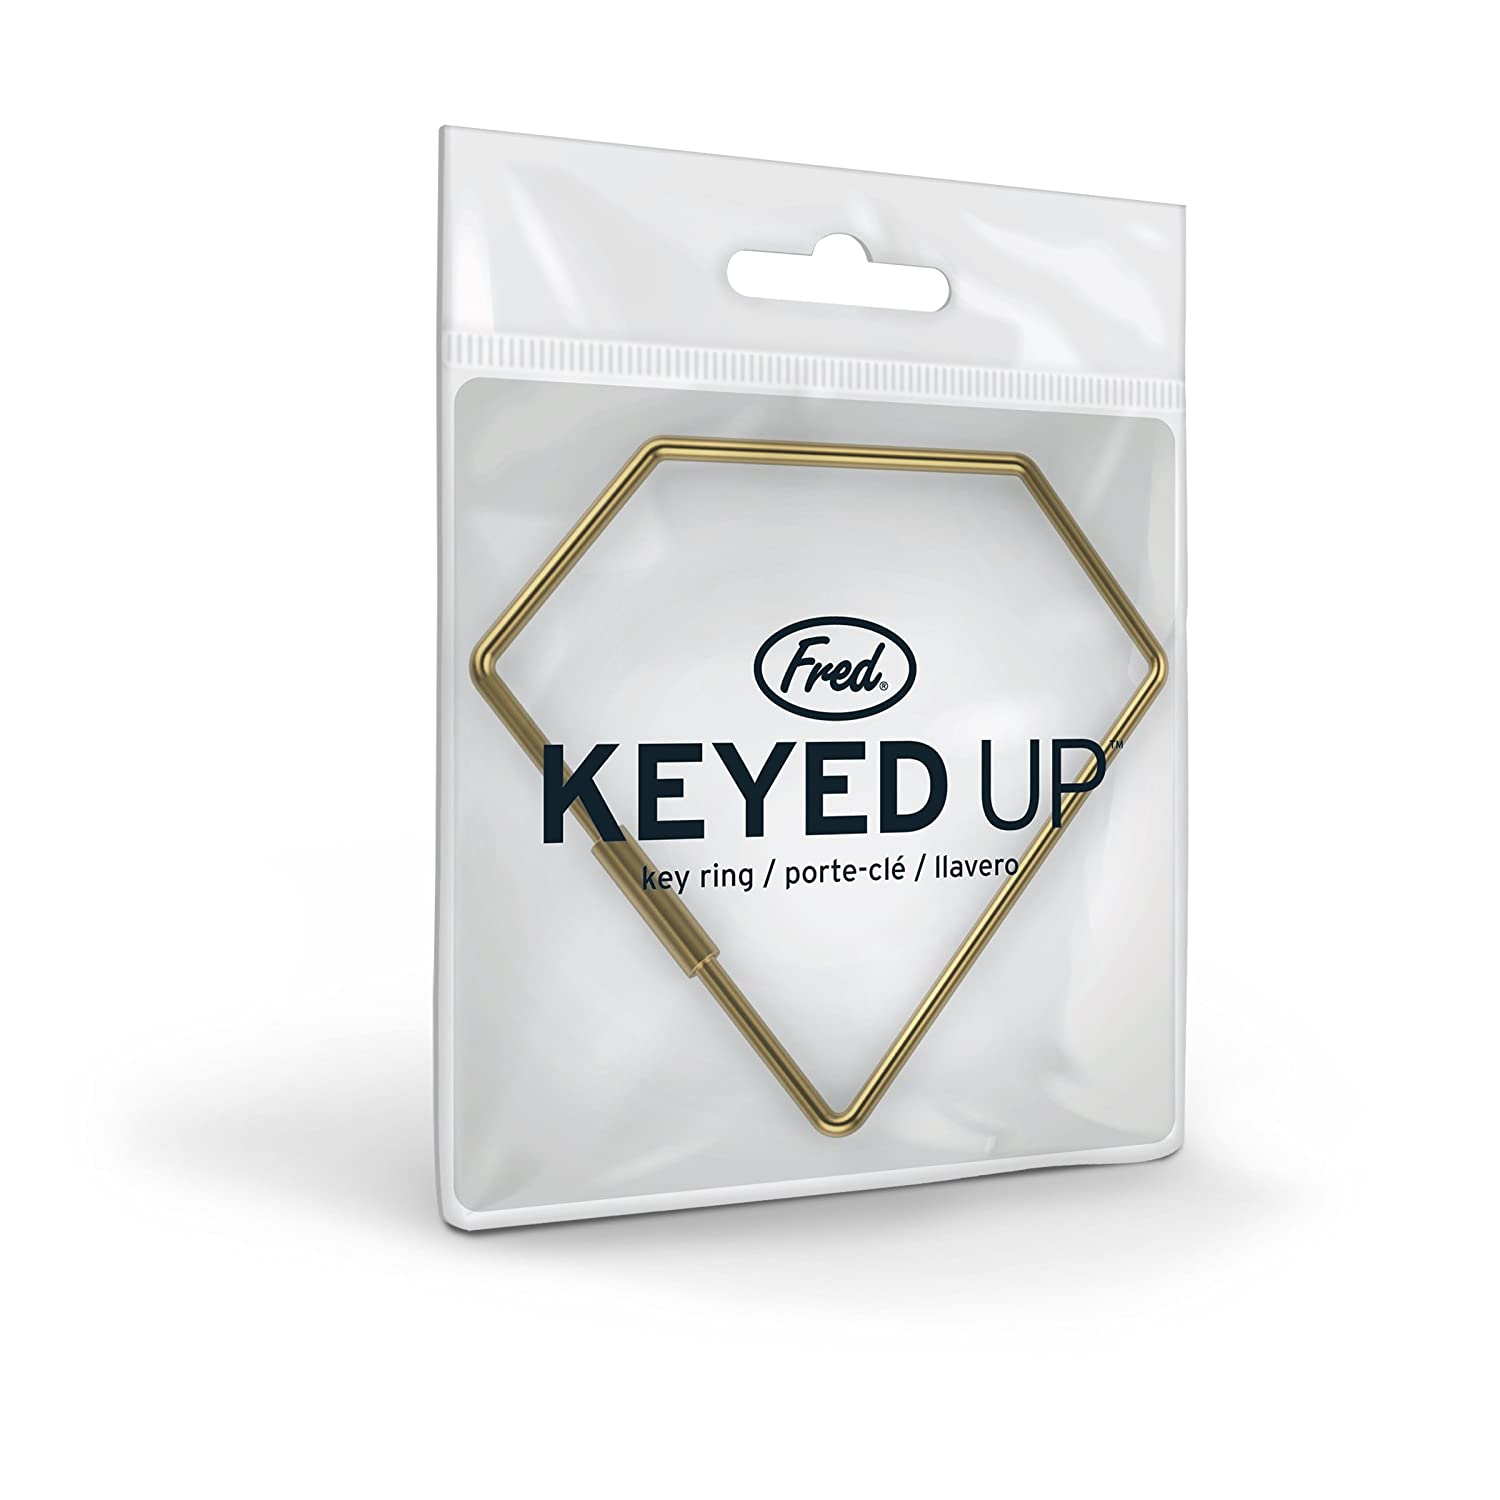 Fred KEYED UP Key Ring, Diamond